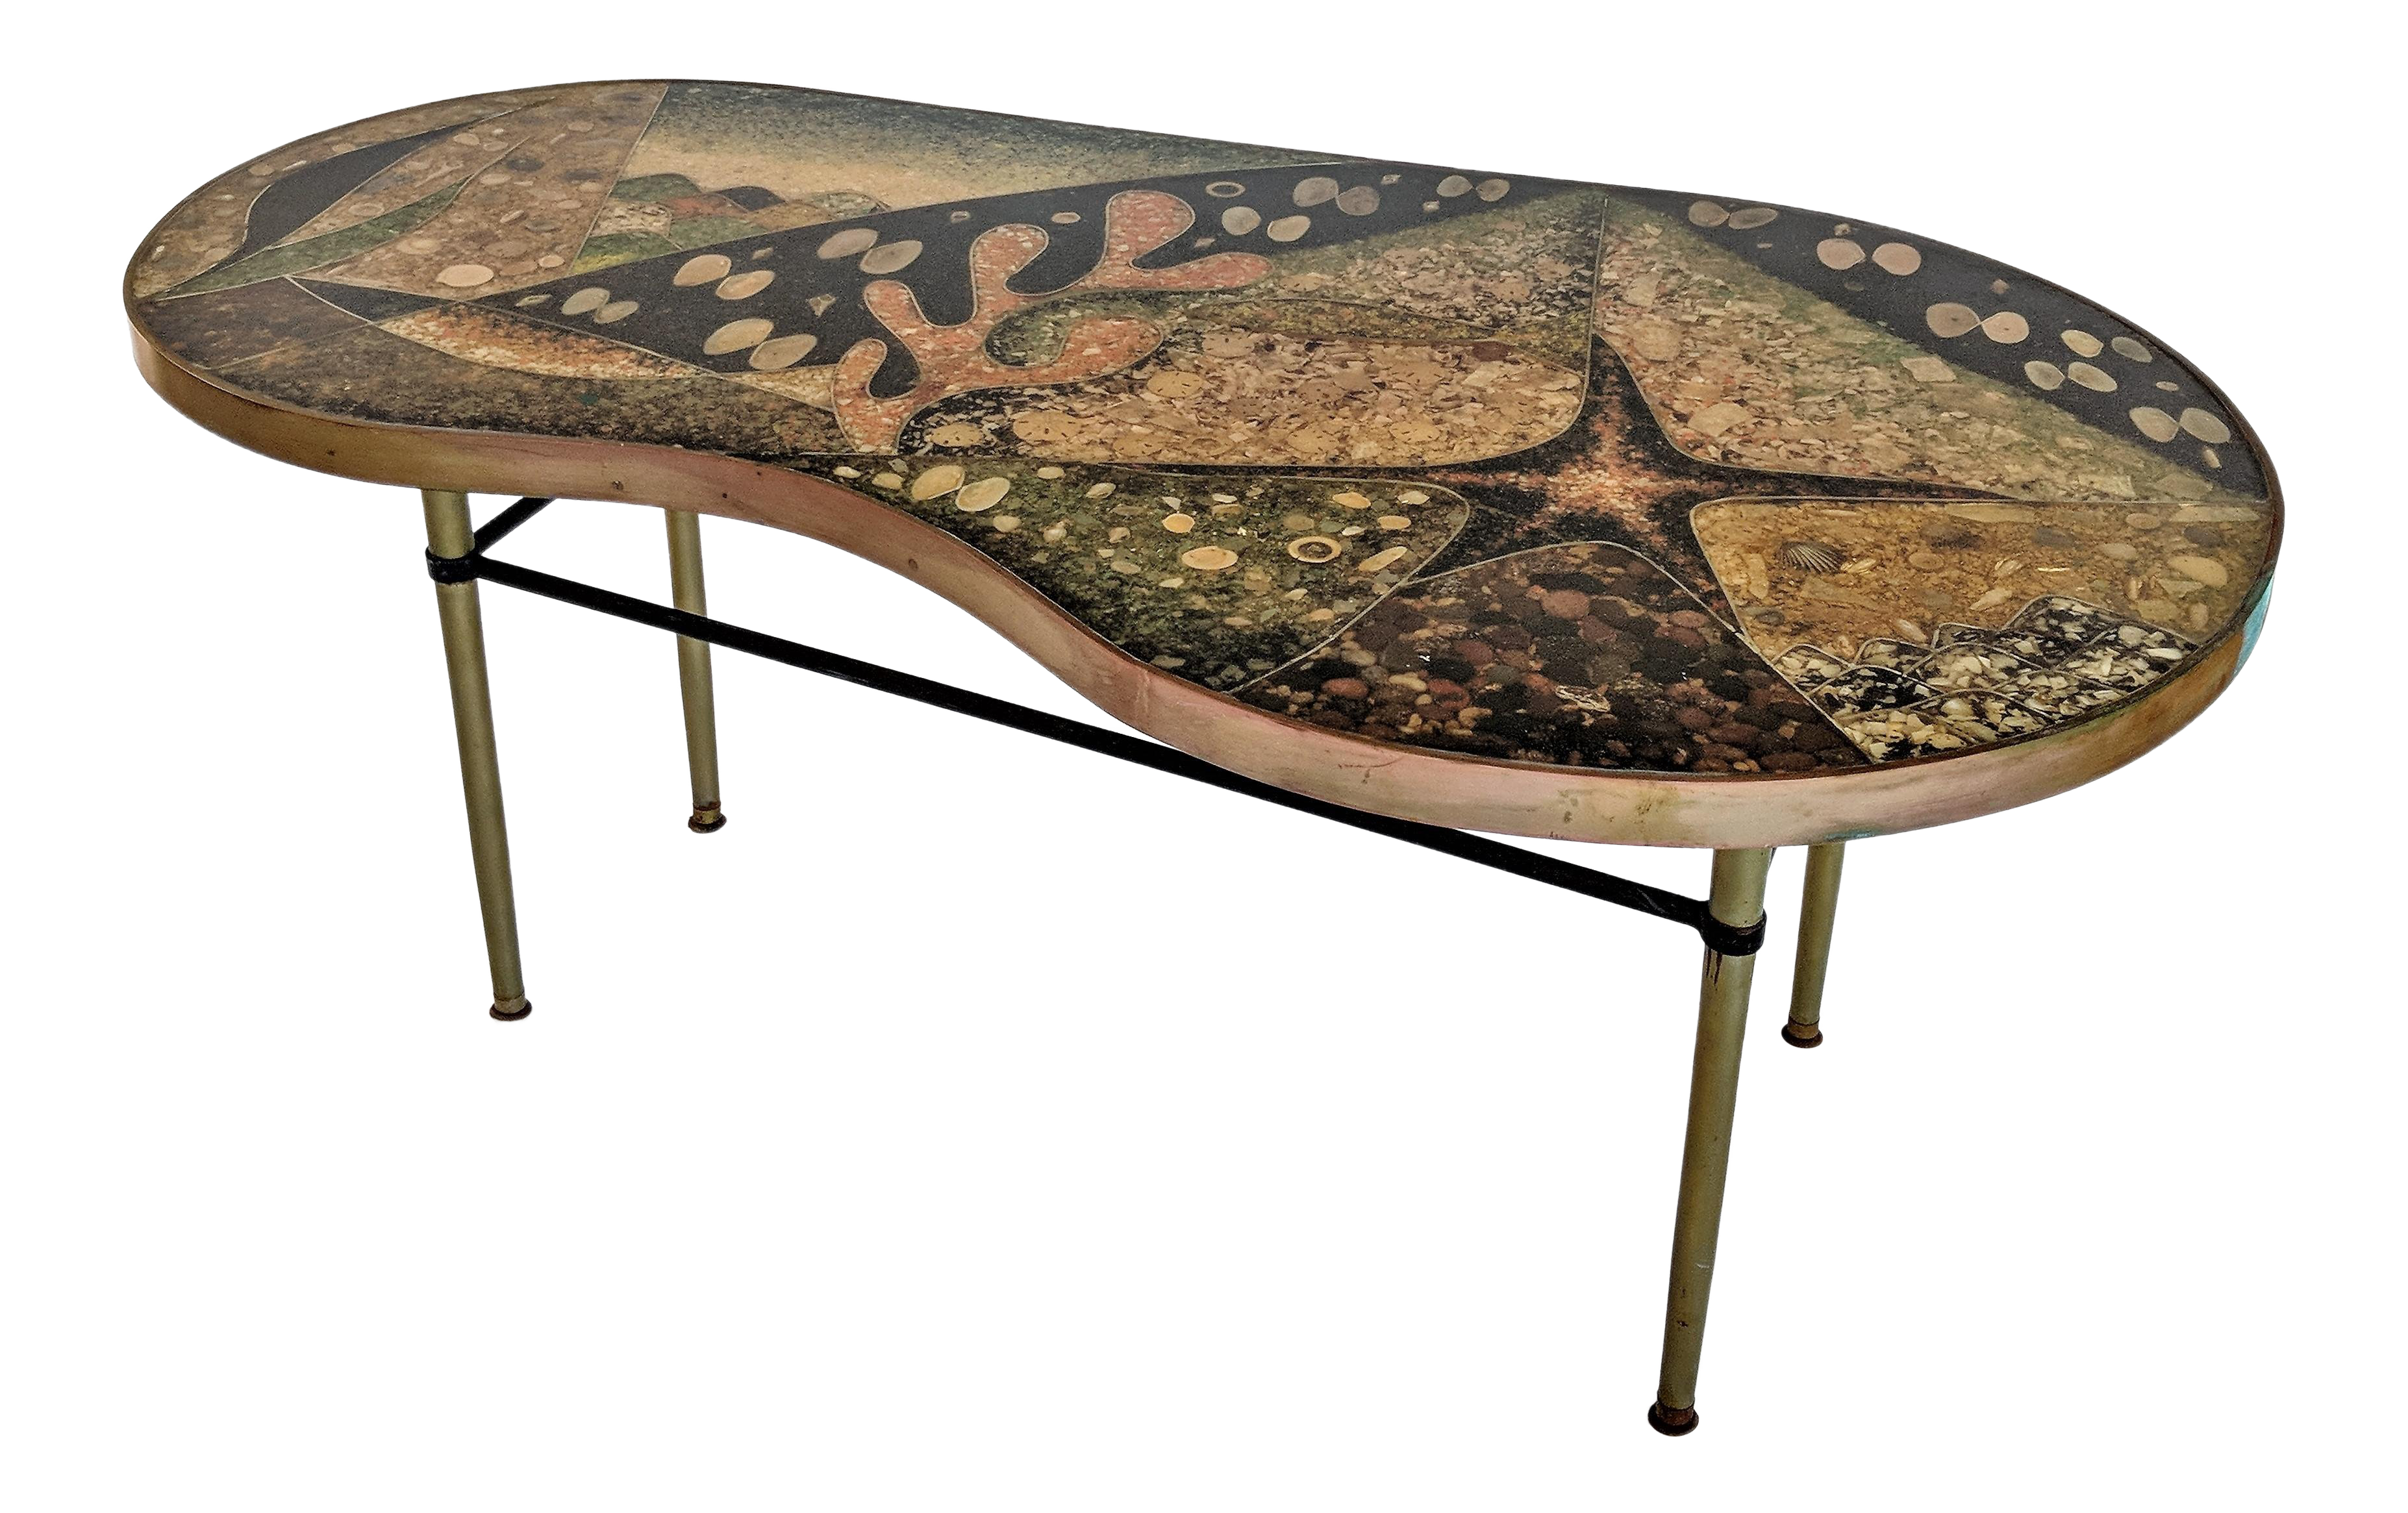 Terrific 1957 Mid Century Modern Inlaid Copper Resin Shell And Stone Coffee Table Ncnpc Chair Design For Home Ncnpcorg